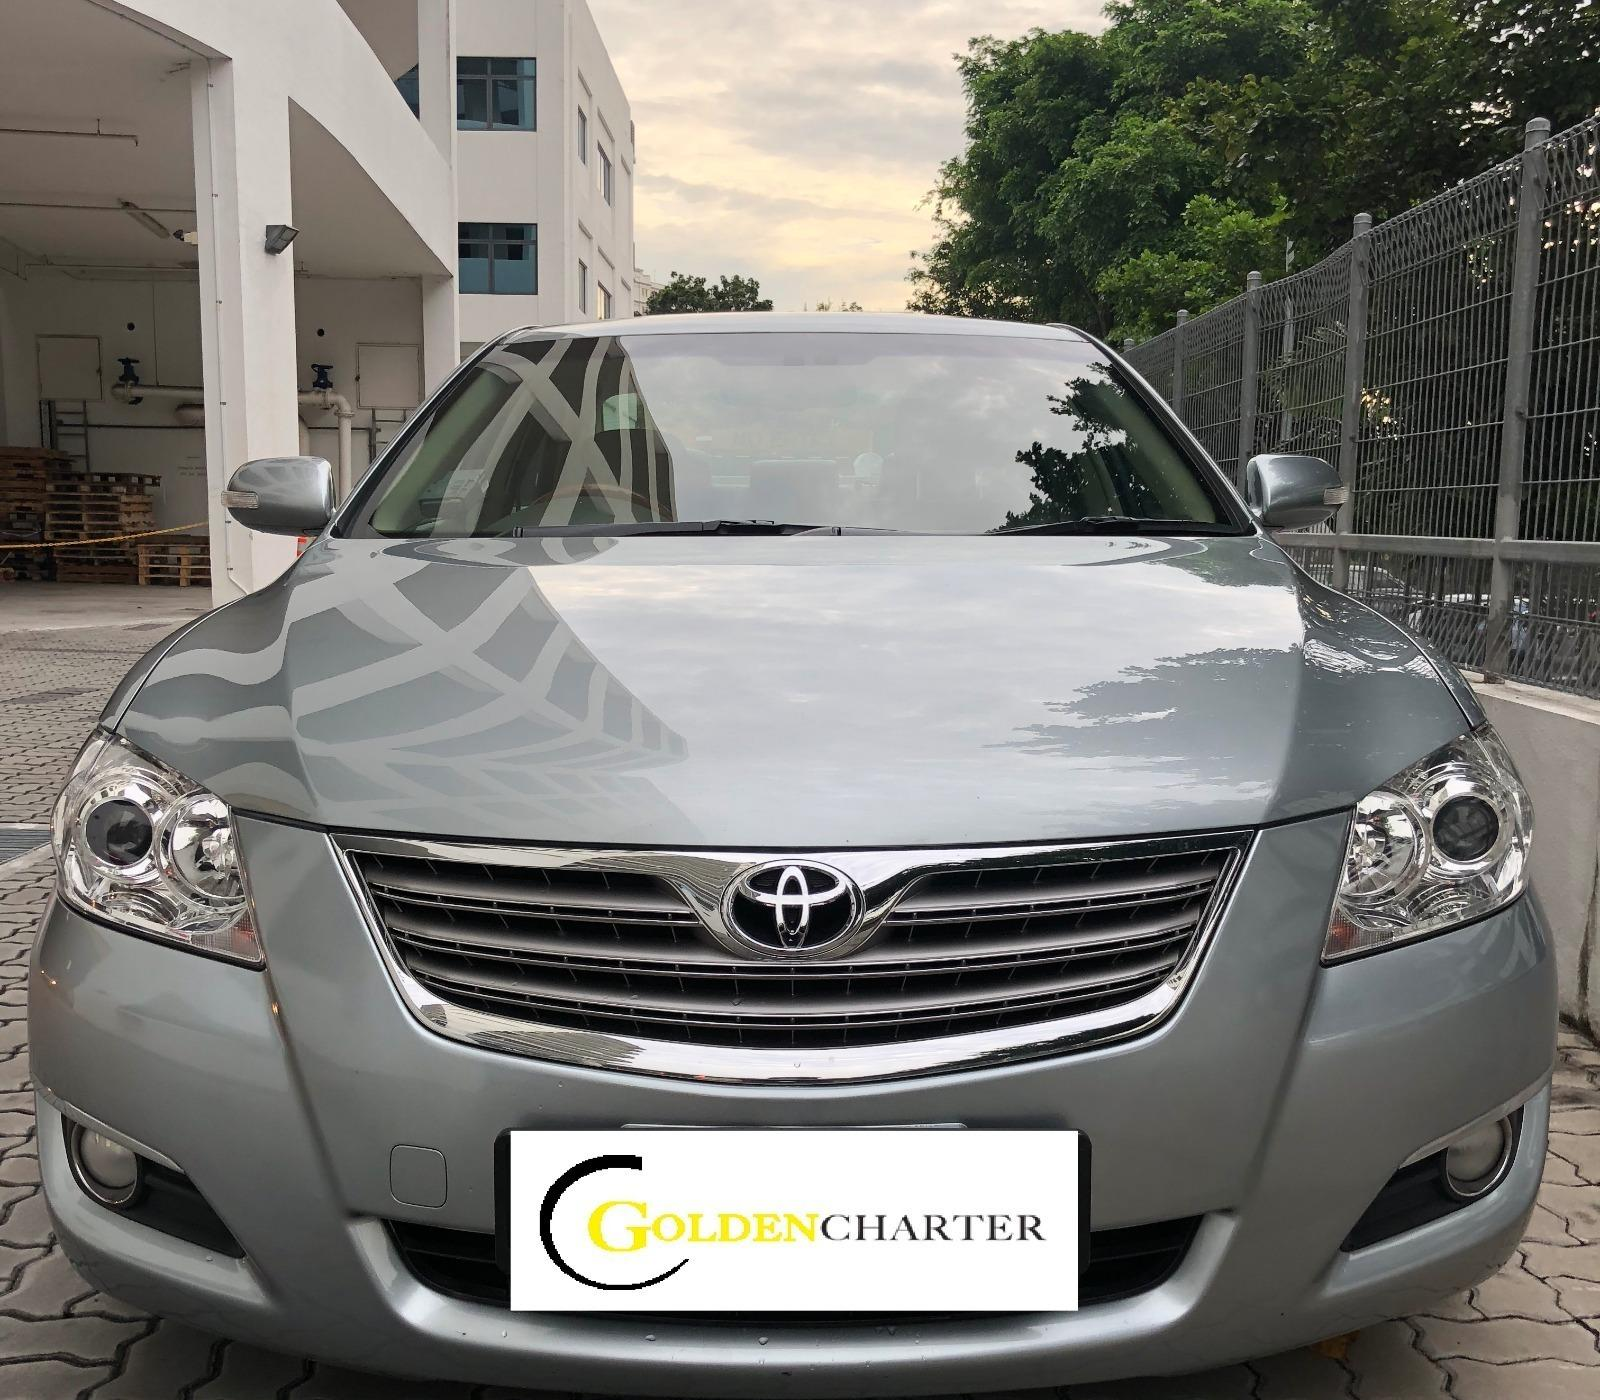 Toyota Camry RENT SUPER CHEAP RENTAL FOR Grab/Ryde/Personal USAGEA